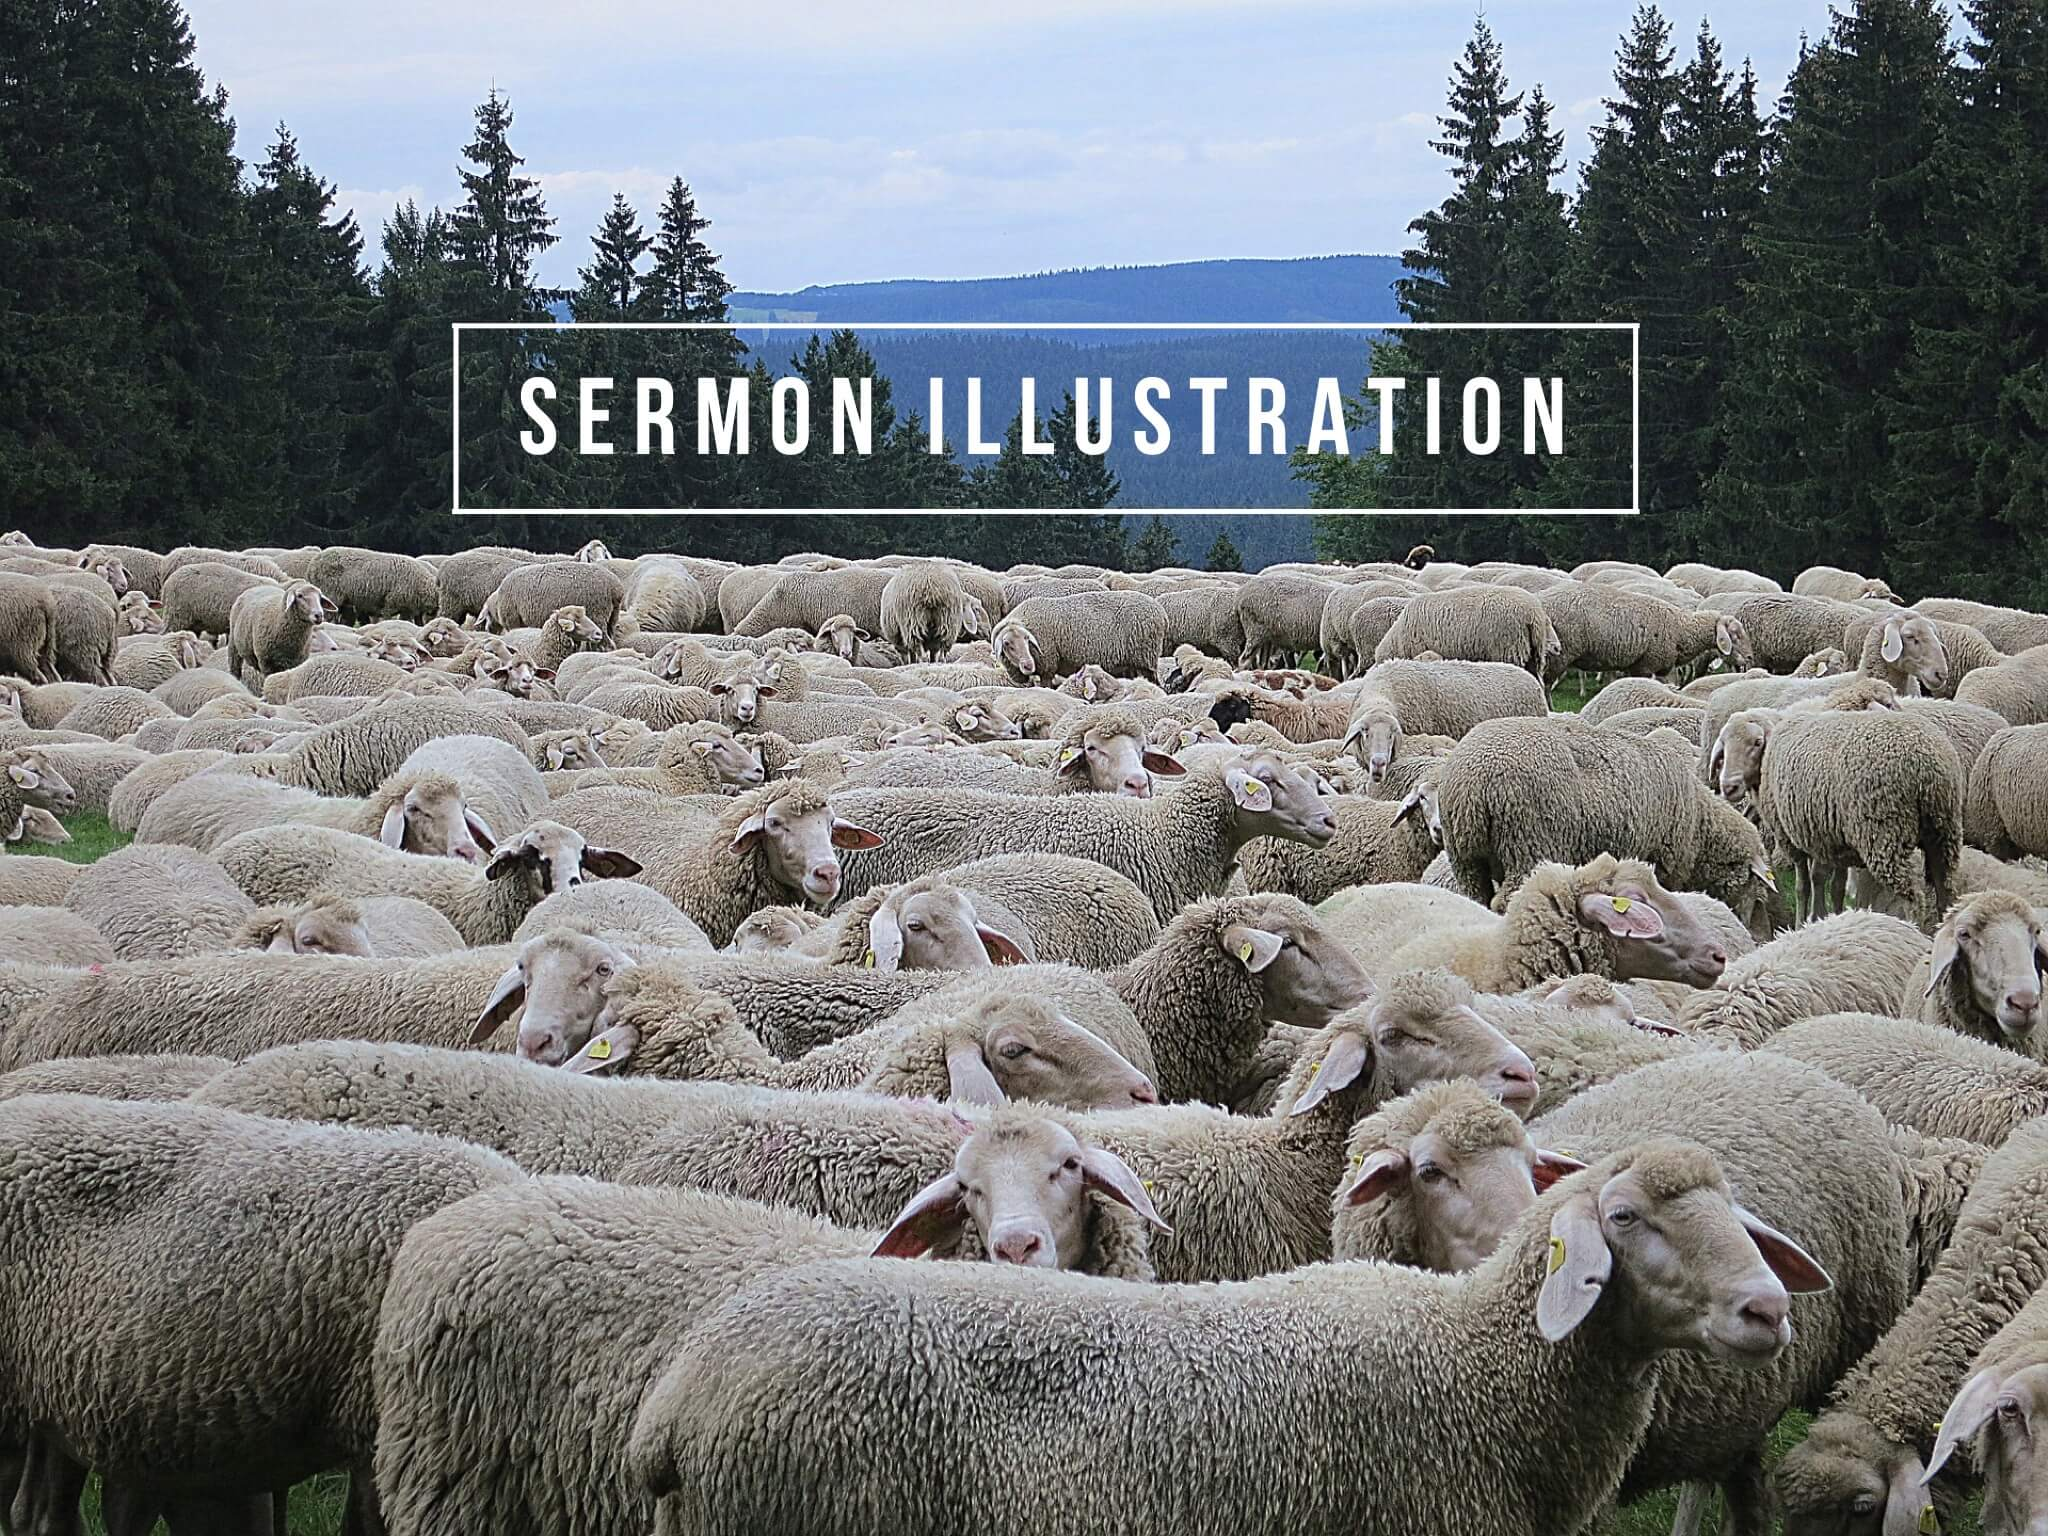 The Shepherd's Voice (Sermon Illustration) - Pro Preacher